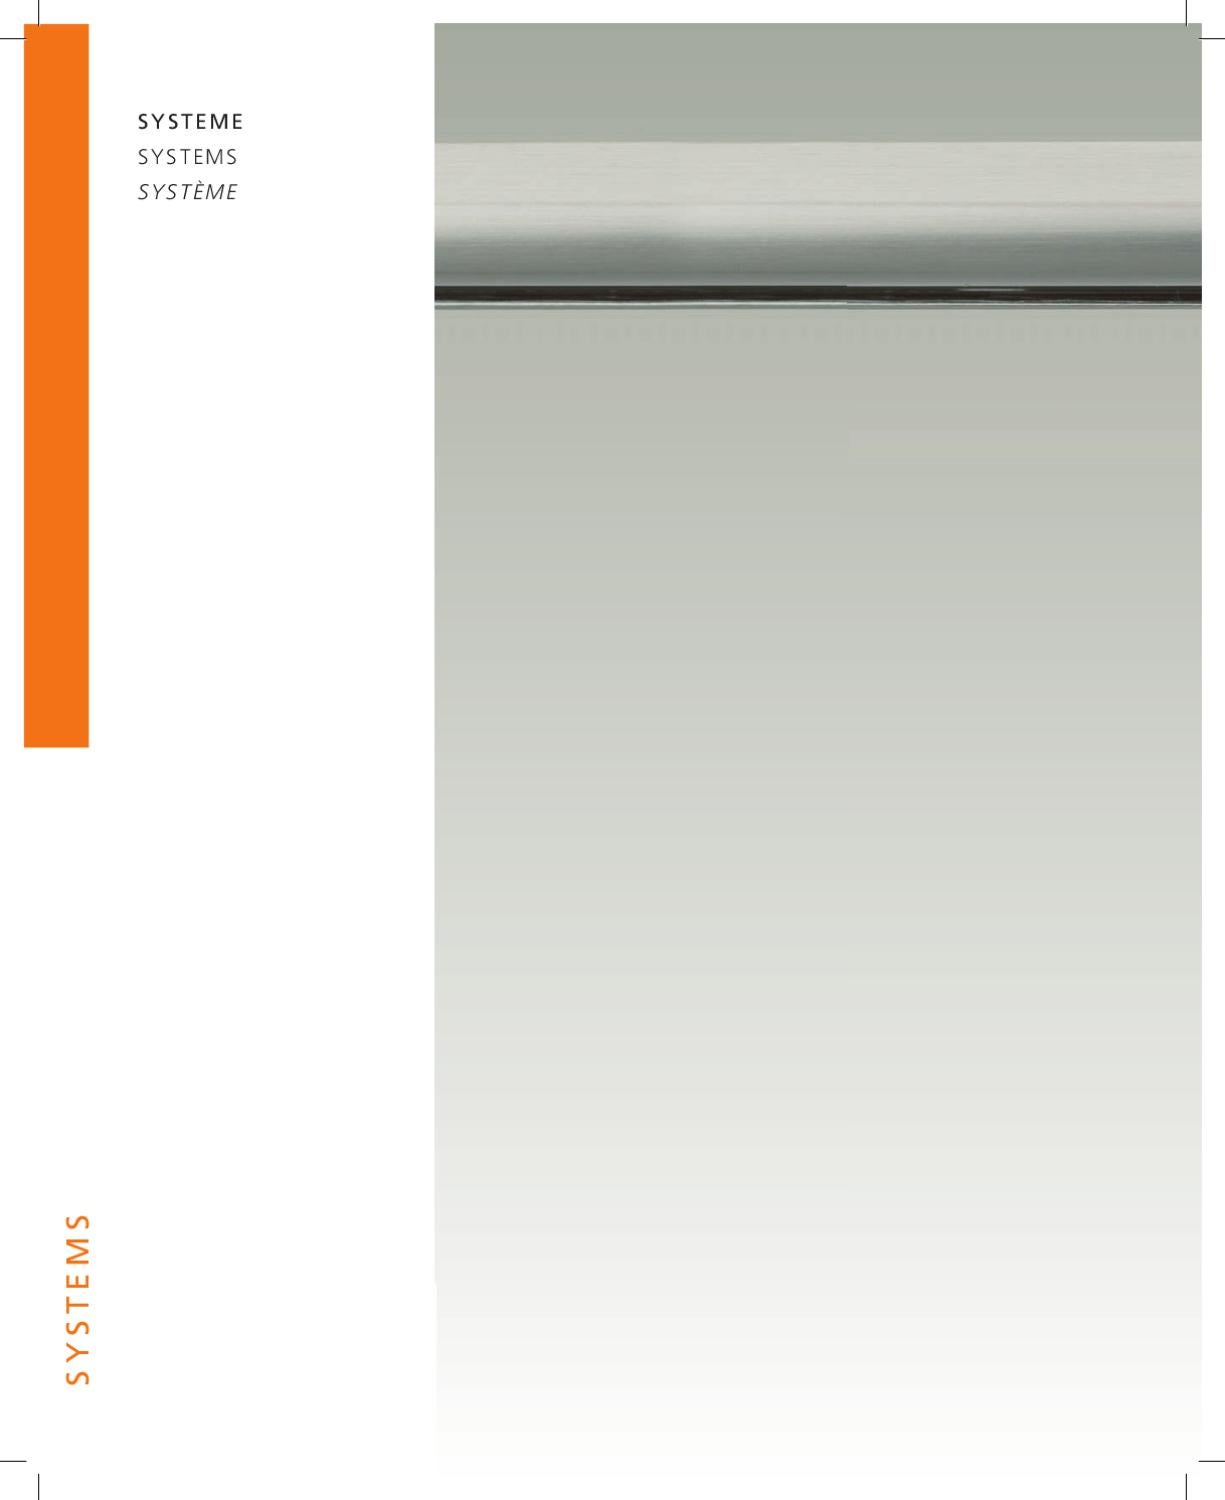 Wand Orange Wischtechnik Eglo 2009 10 Catalogue Pdf 484 722 By Diego Cluj Issuu